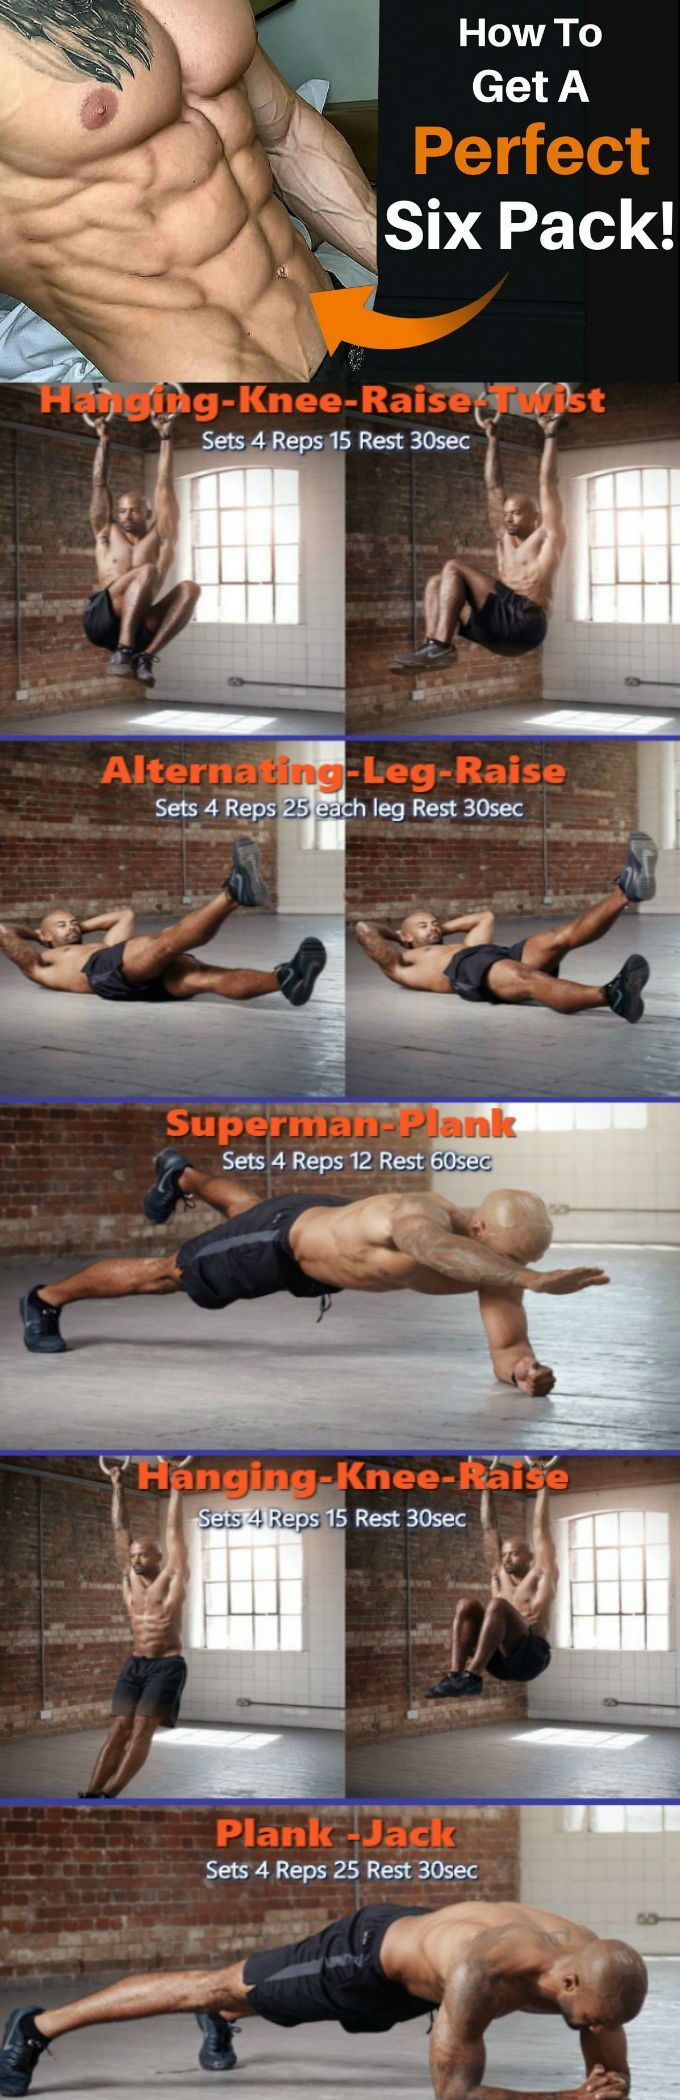 Abs Workout: How To Get The Ultimate 6 Pack - GymGuider.com